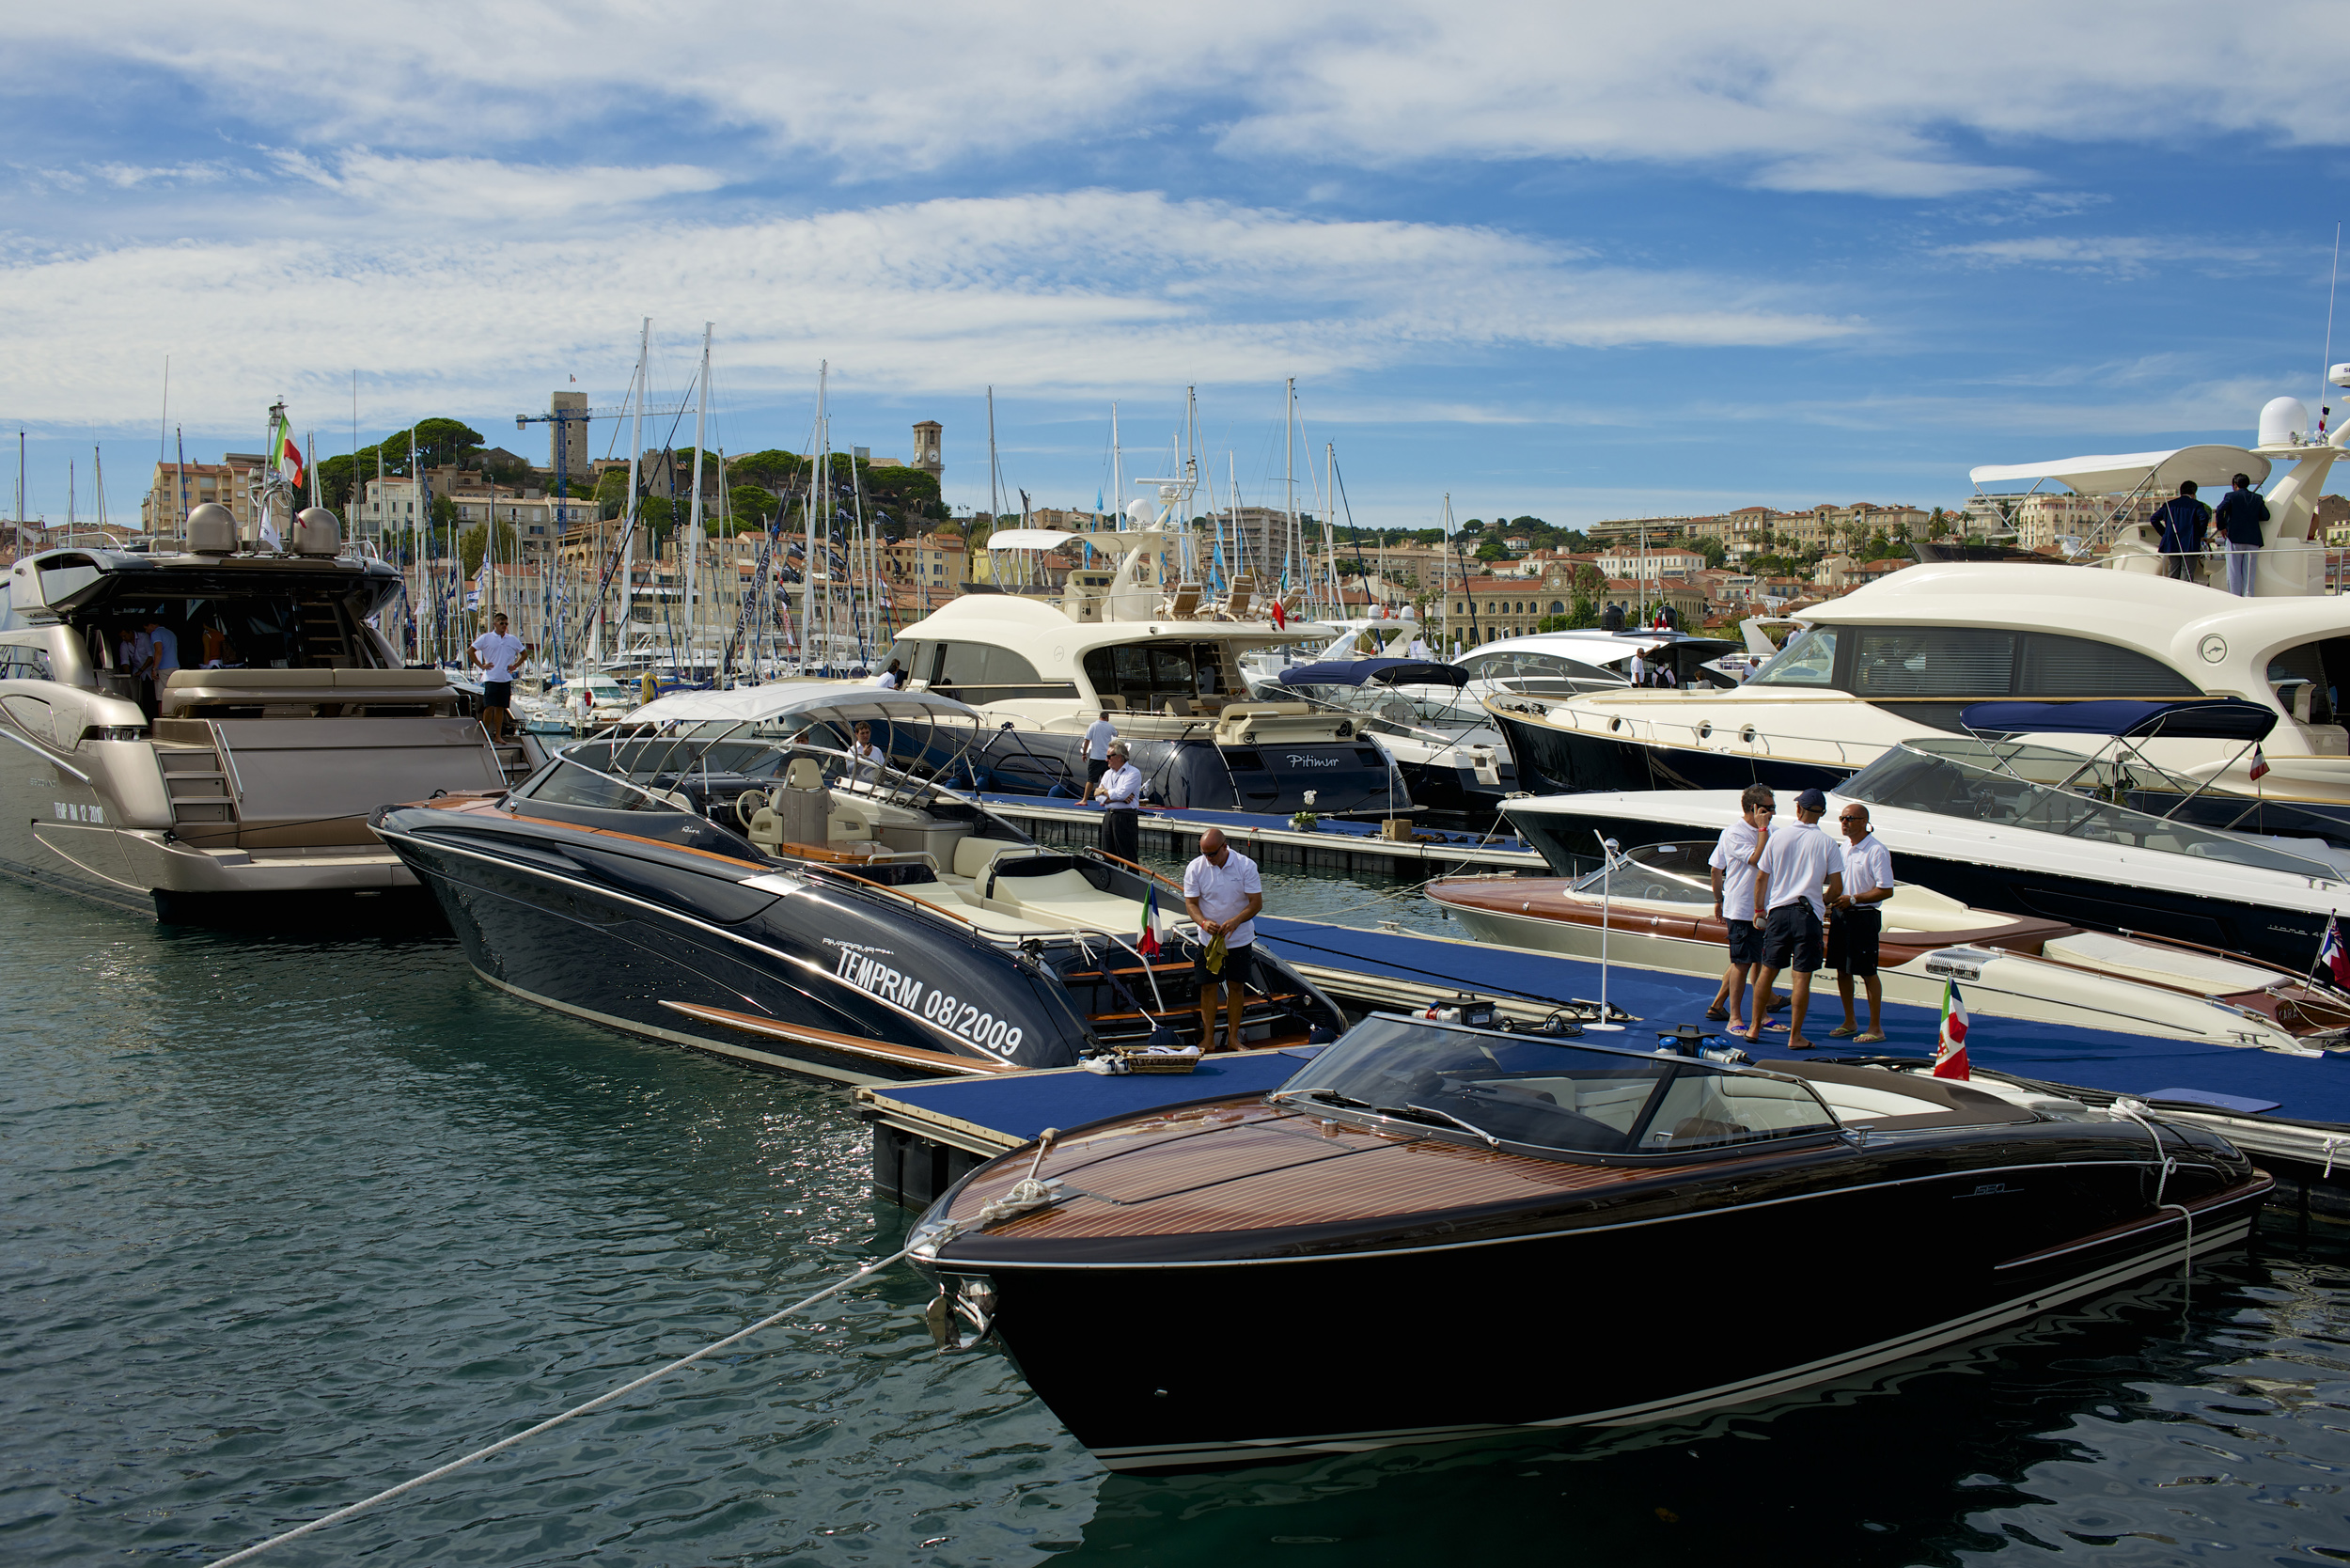 Salon Nautique Cannes Cannes Yachting Festival Yacht Charters For Superyachts Luxury